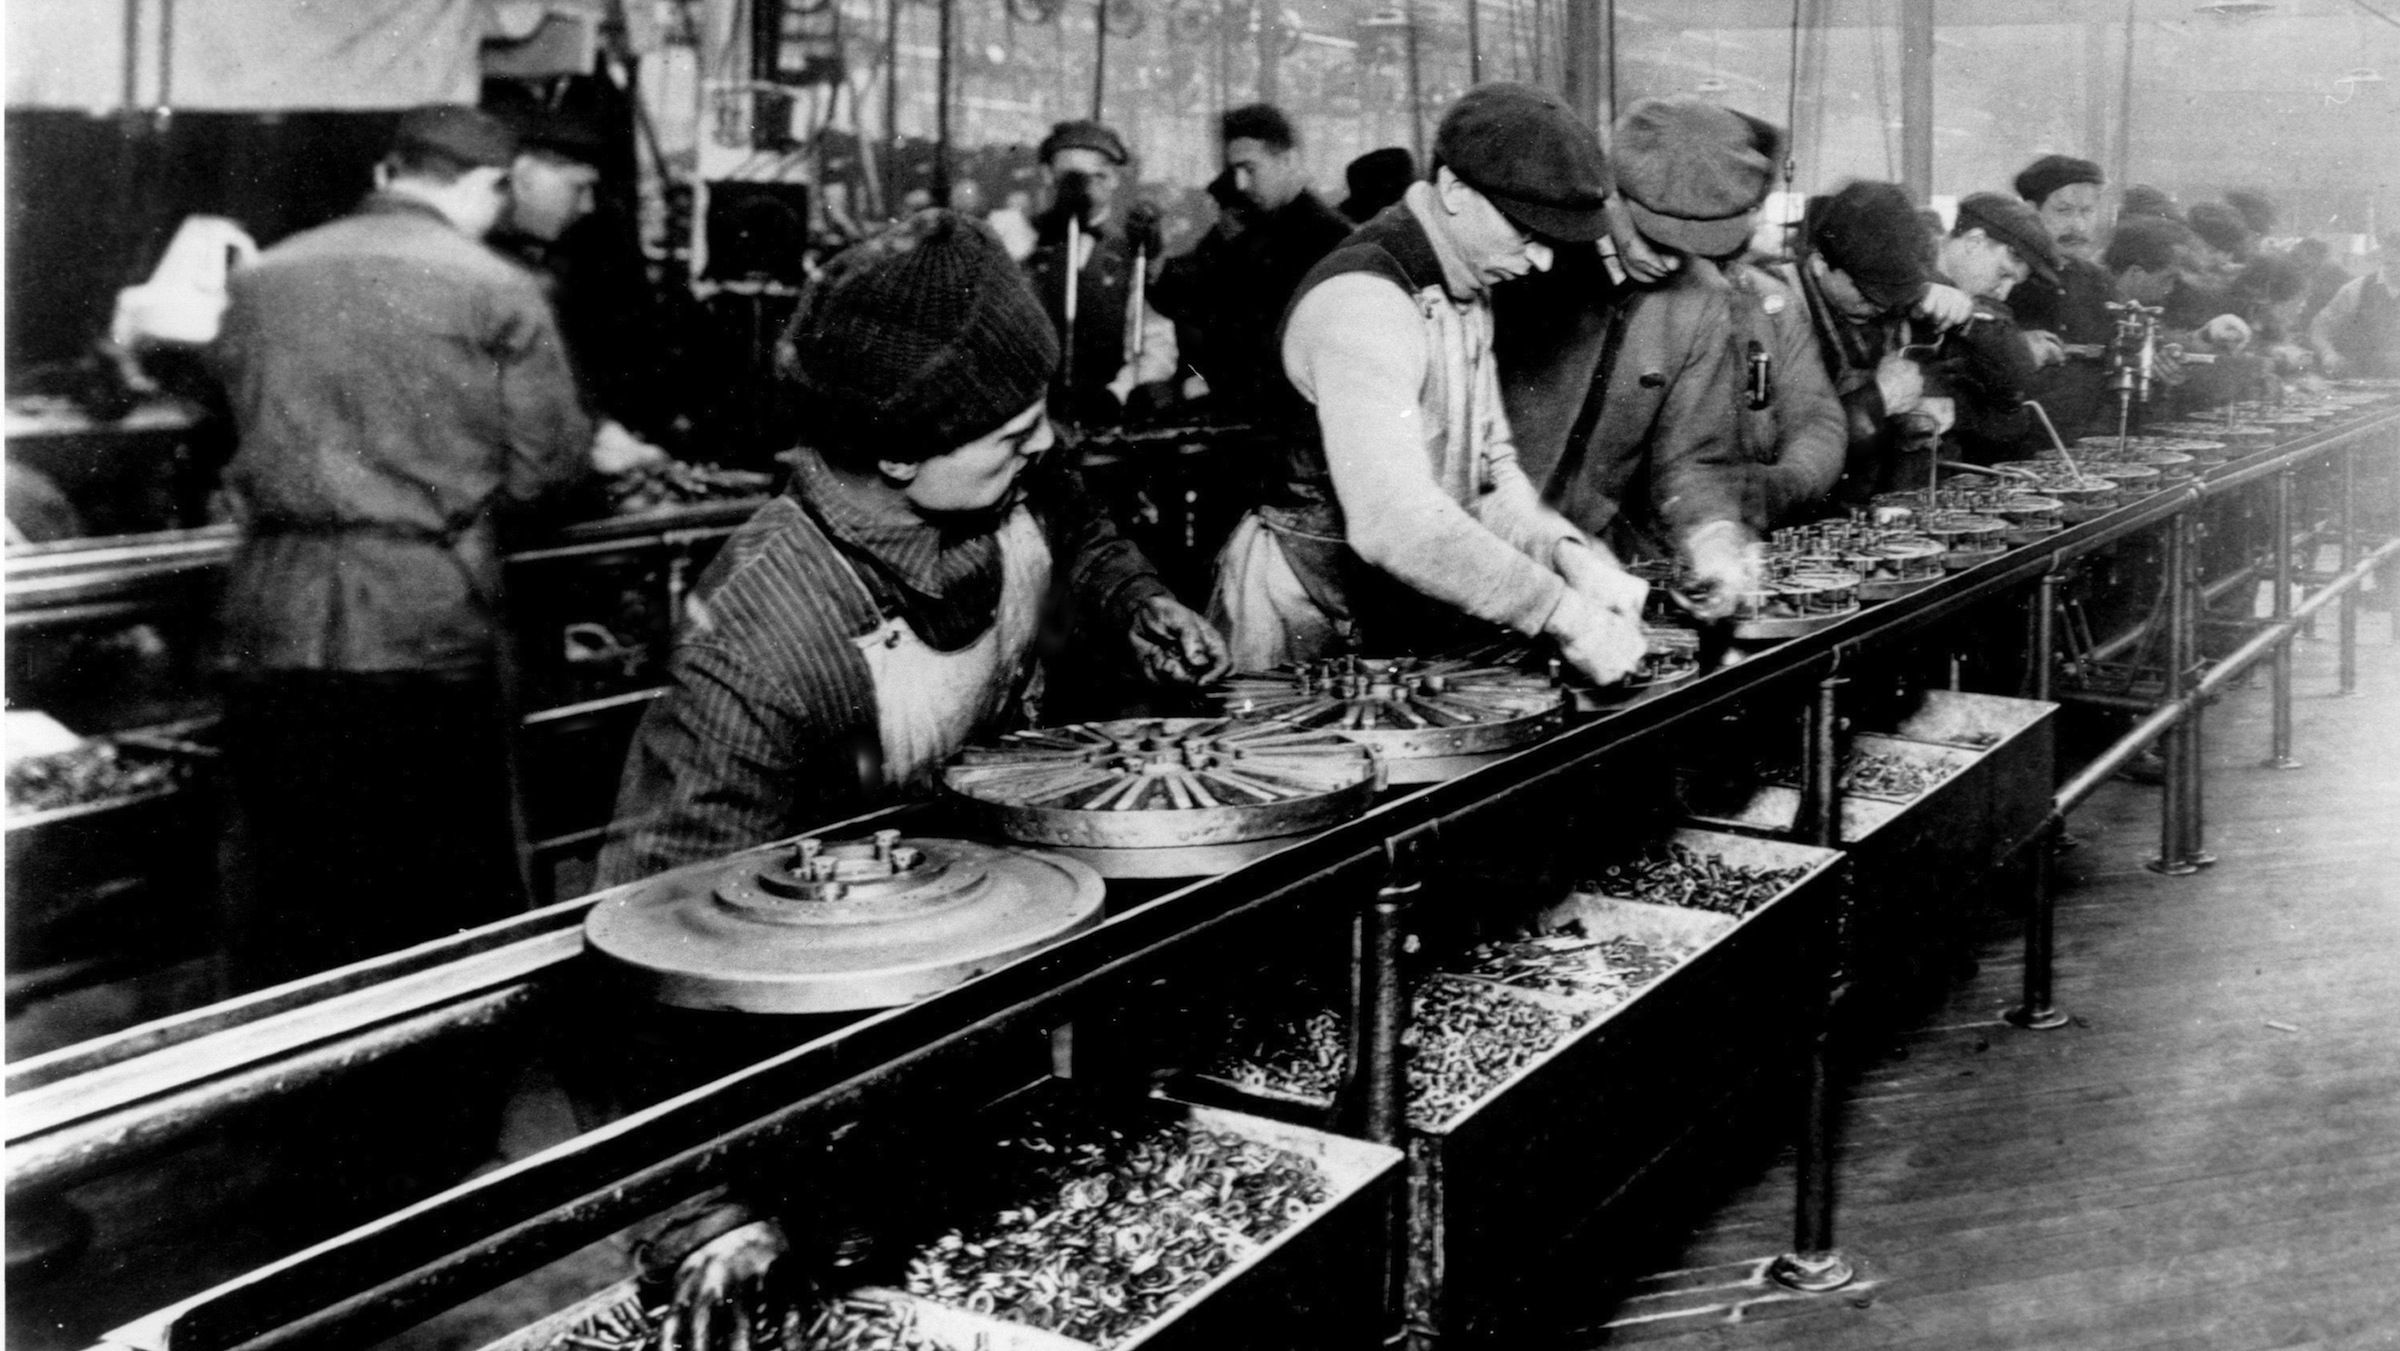 Workers are photographed on a flywheel assembly line at the Ford Motor Company's Highland Park, Mi., plant in 1913.  The use of a moving line reduced a car's assembly time from 12 hours to 93 minutes. The world's first automatic conveyor belt escalated the Industrial Age inspiring Henry Ford toward an unprecedented $5 per day minimum wage and an eight-hour day when auto industry workers were making $2.34 for a  nine-hour shift. Faster assemblage meant quicker availability, giving impetus to America's car culture and an ever-increasing mobile society.  (AP Photo/Ford Motor Company)